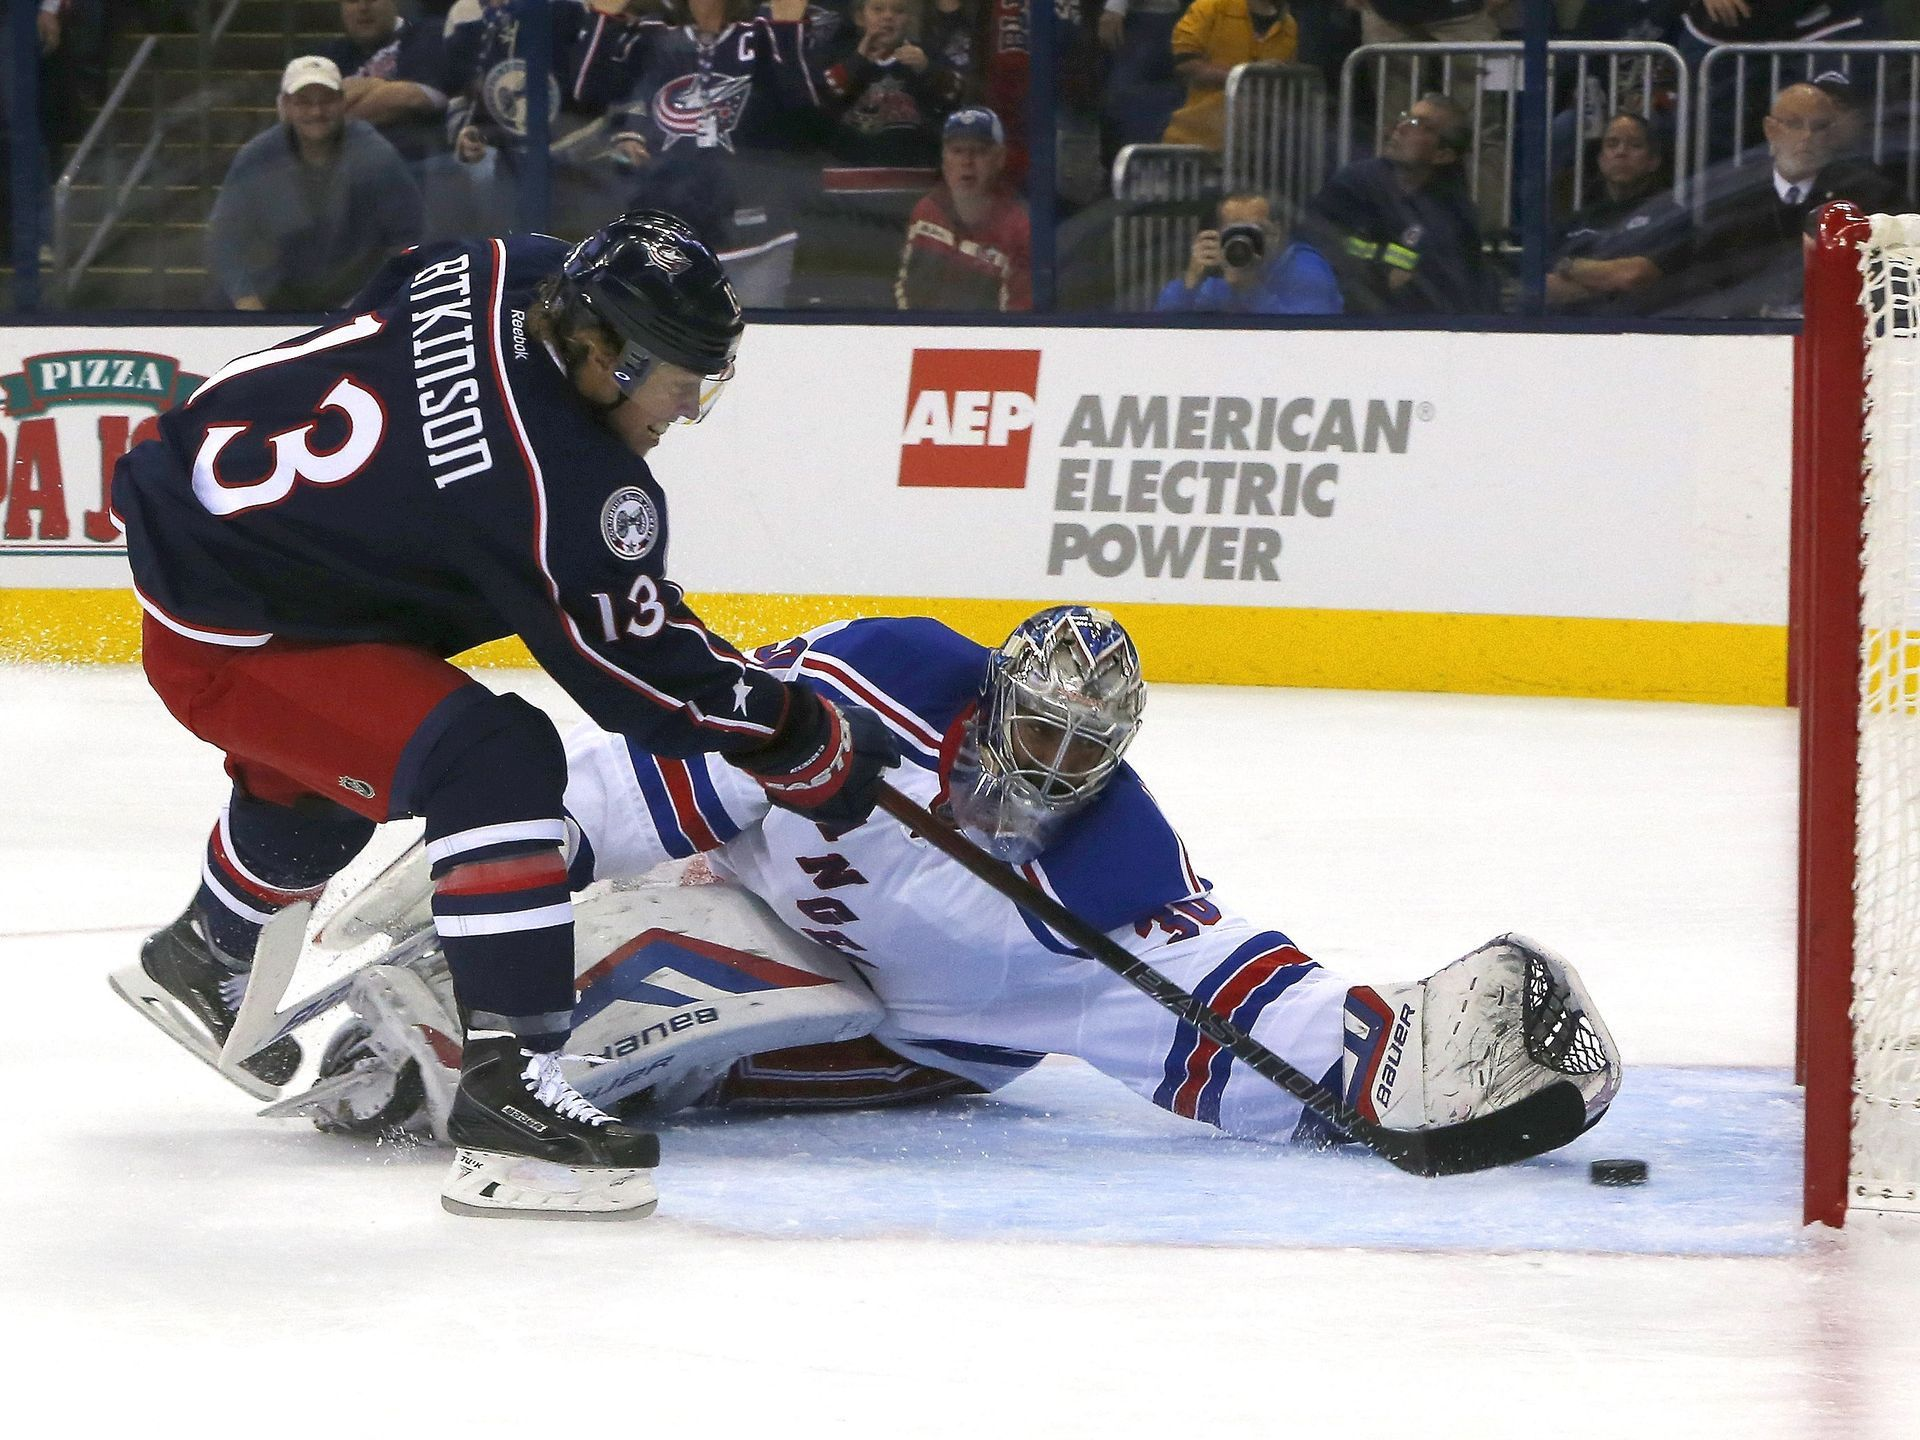 Blue Jackets wing Cam Atkinson (13) scores past Rangers goalie Henrik Lundqvist (30) during the second period in Columbus. Despite Atkinson's goal, New York won 4-2.  Russell LaBounty, USA TODAY Sports